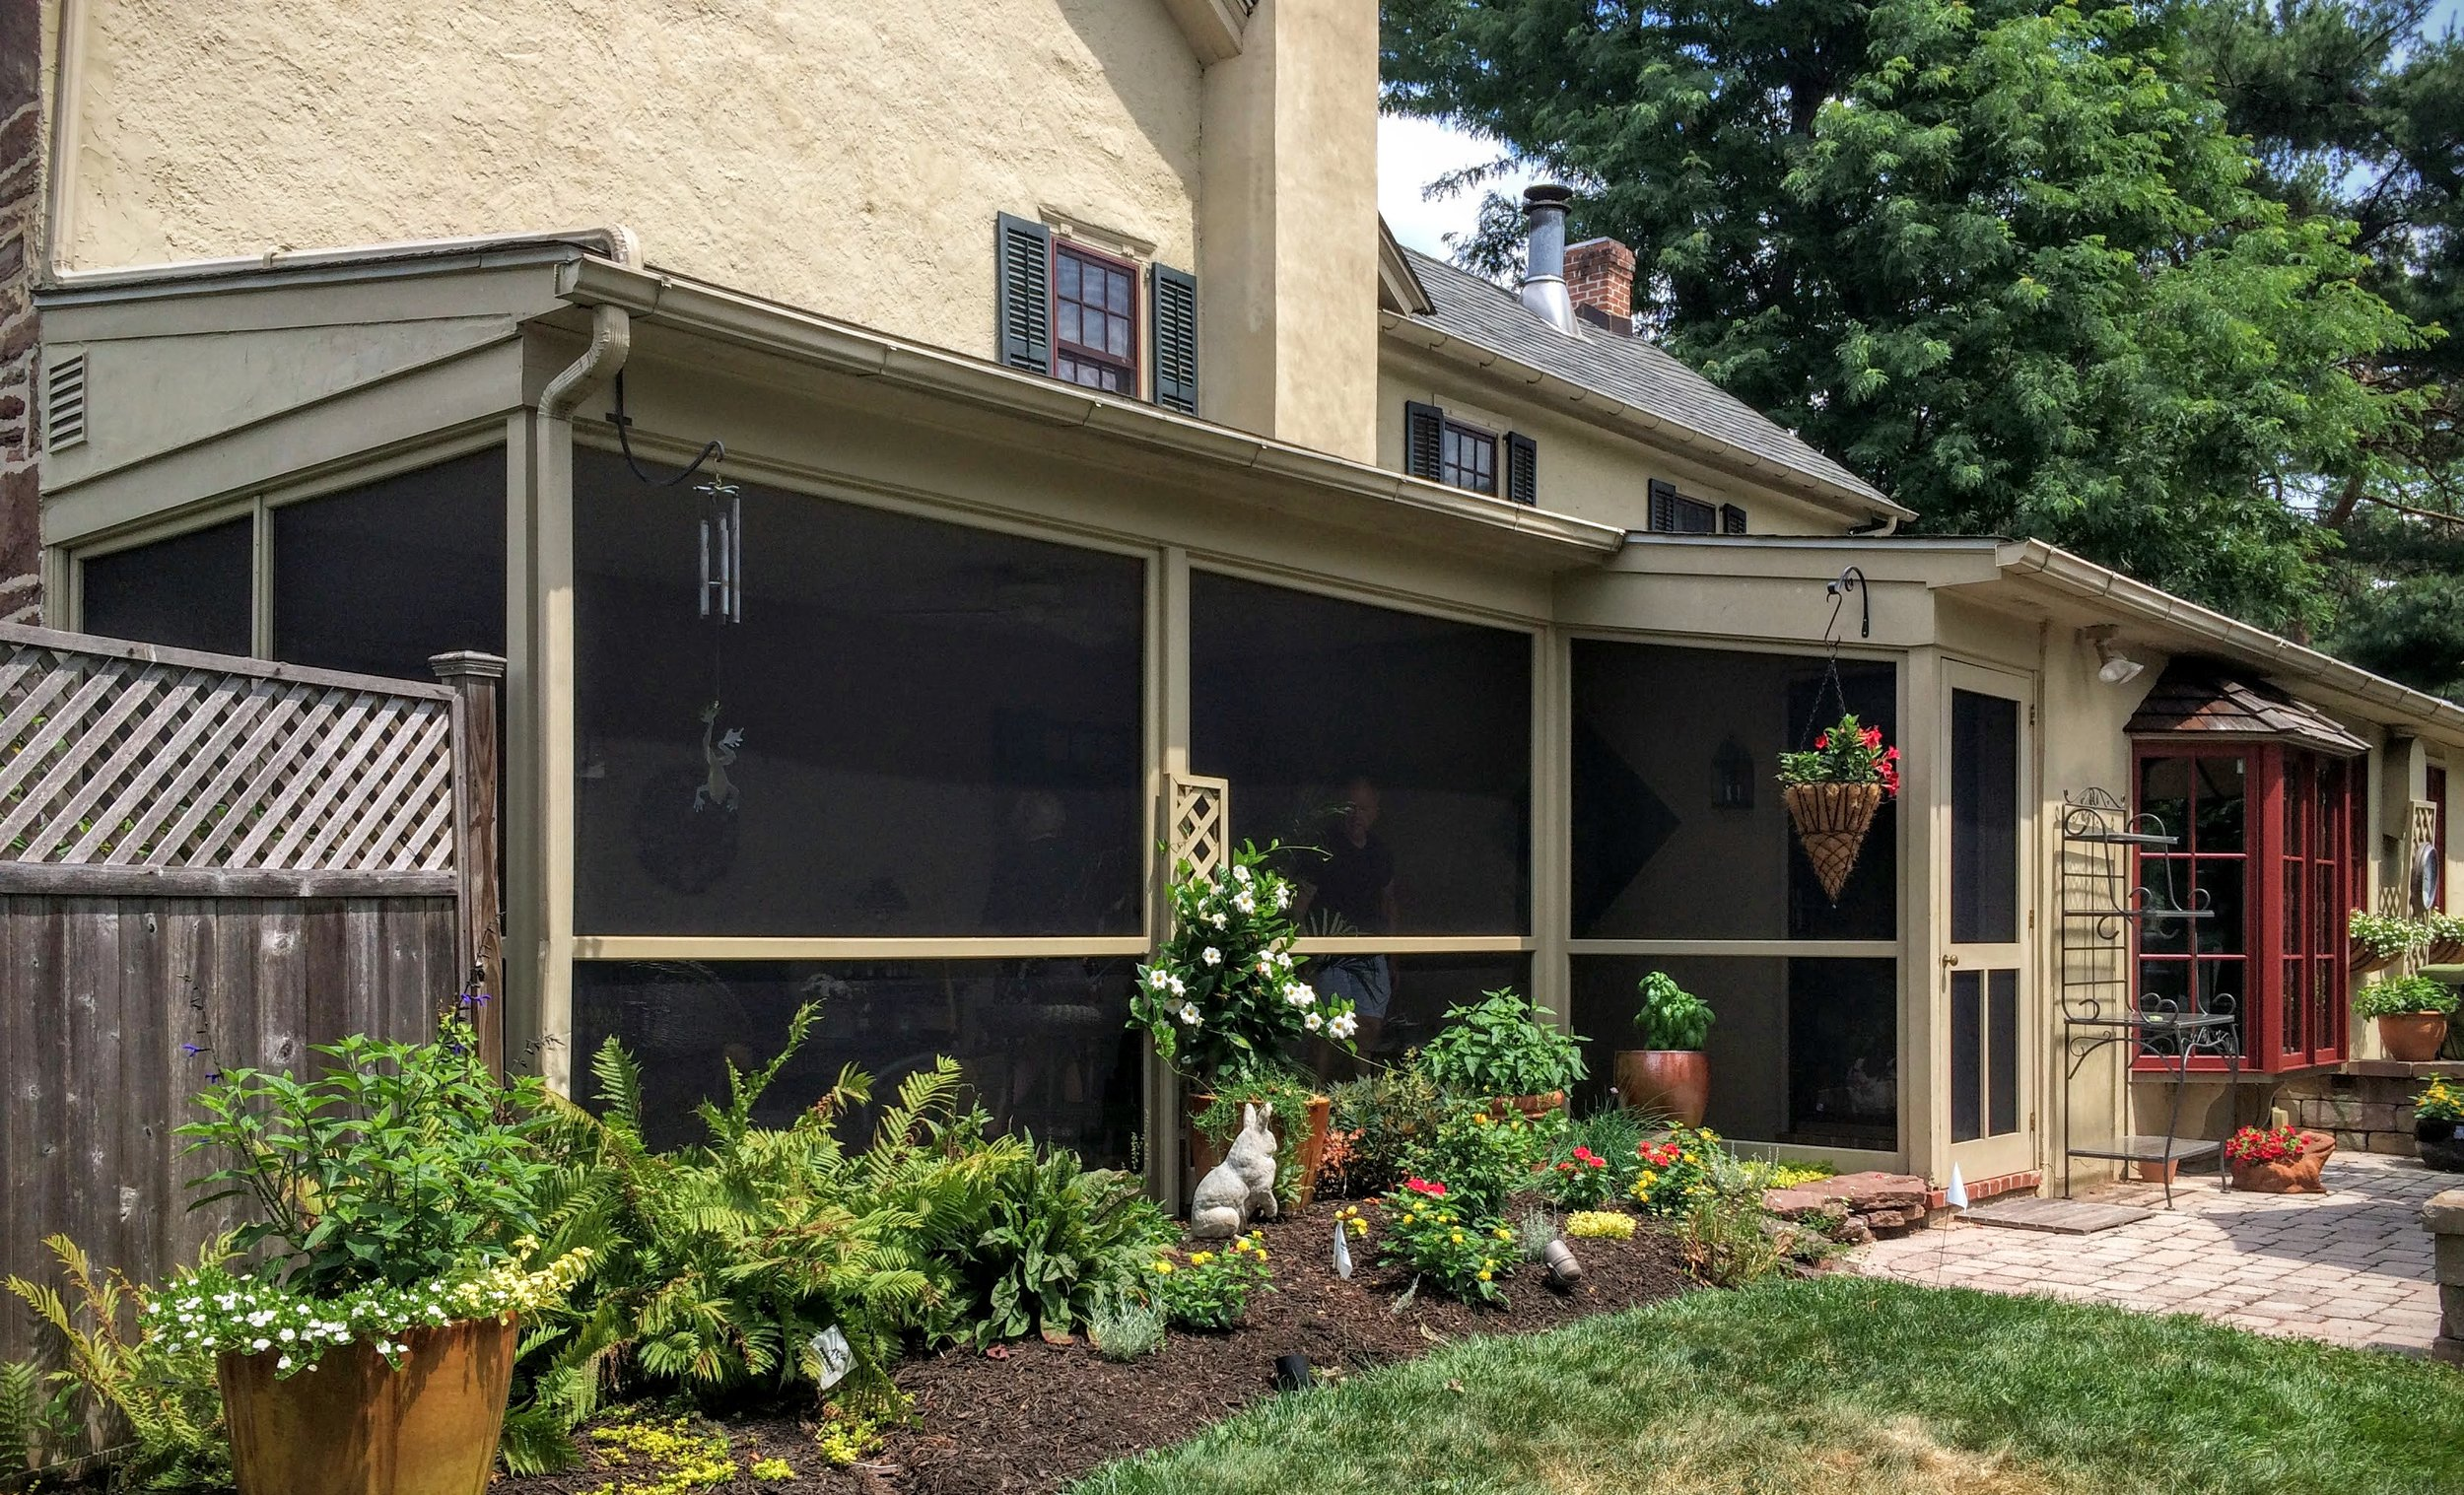 Renue Glass and Screen Repair Garden Patio Screen Tight